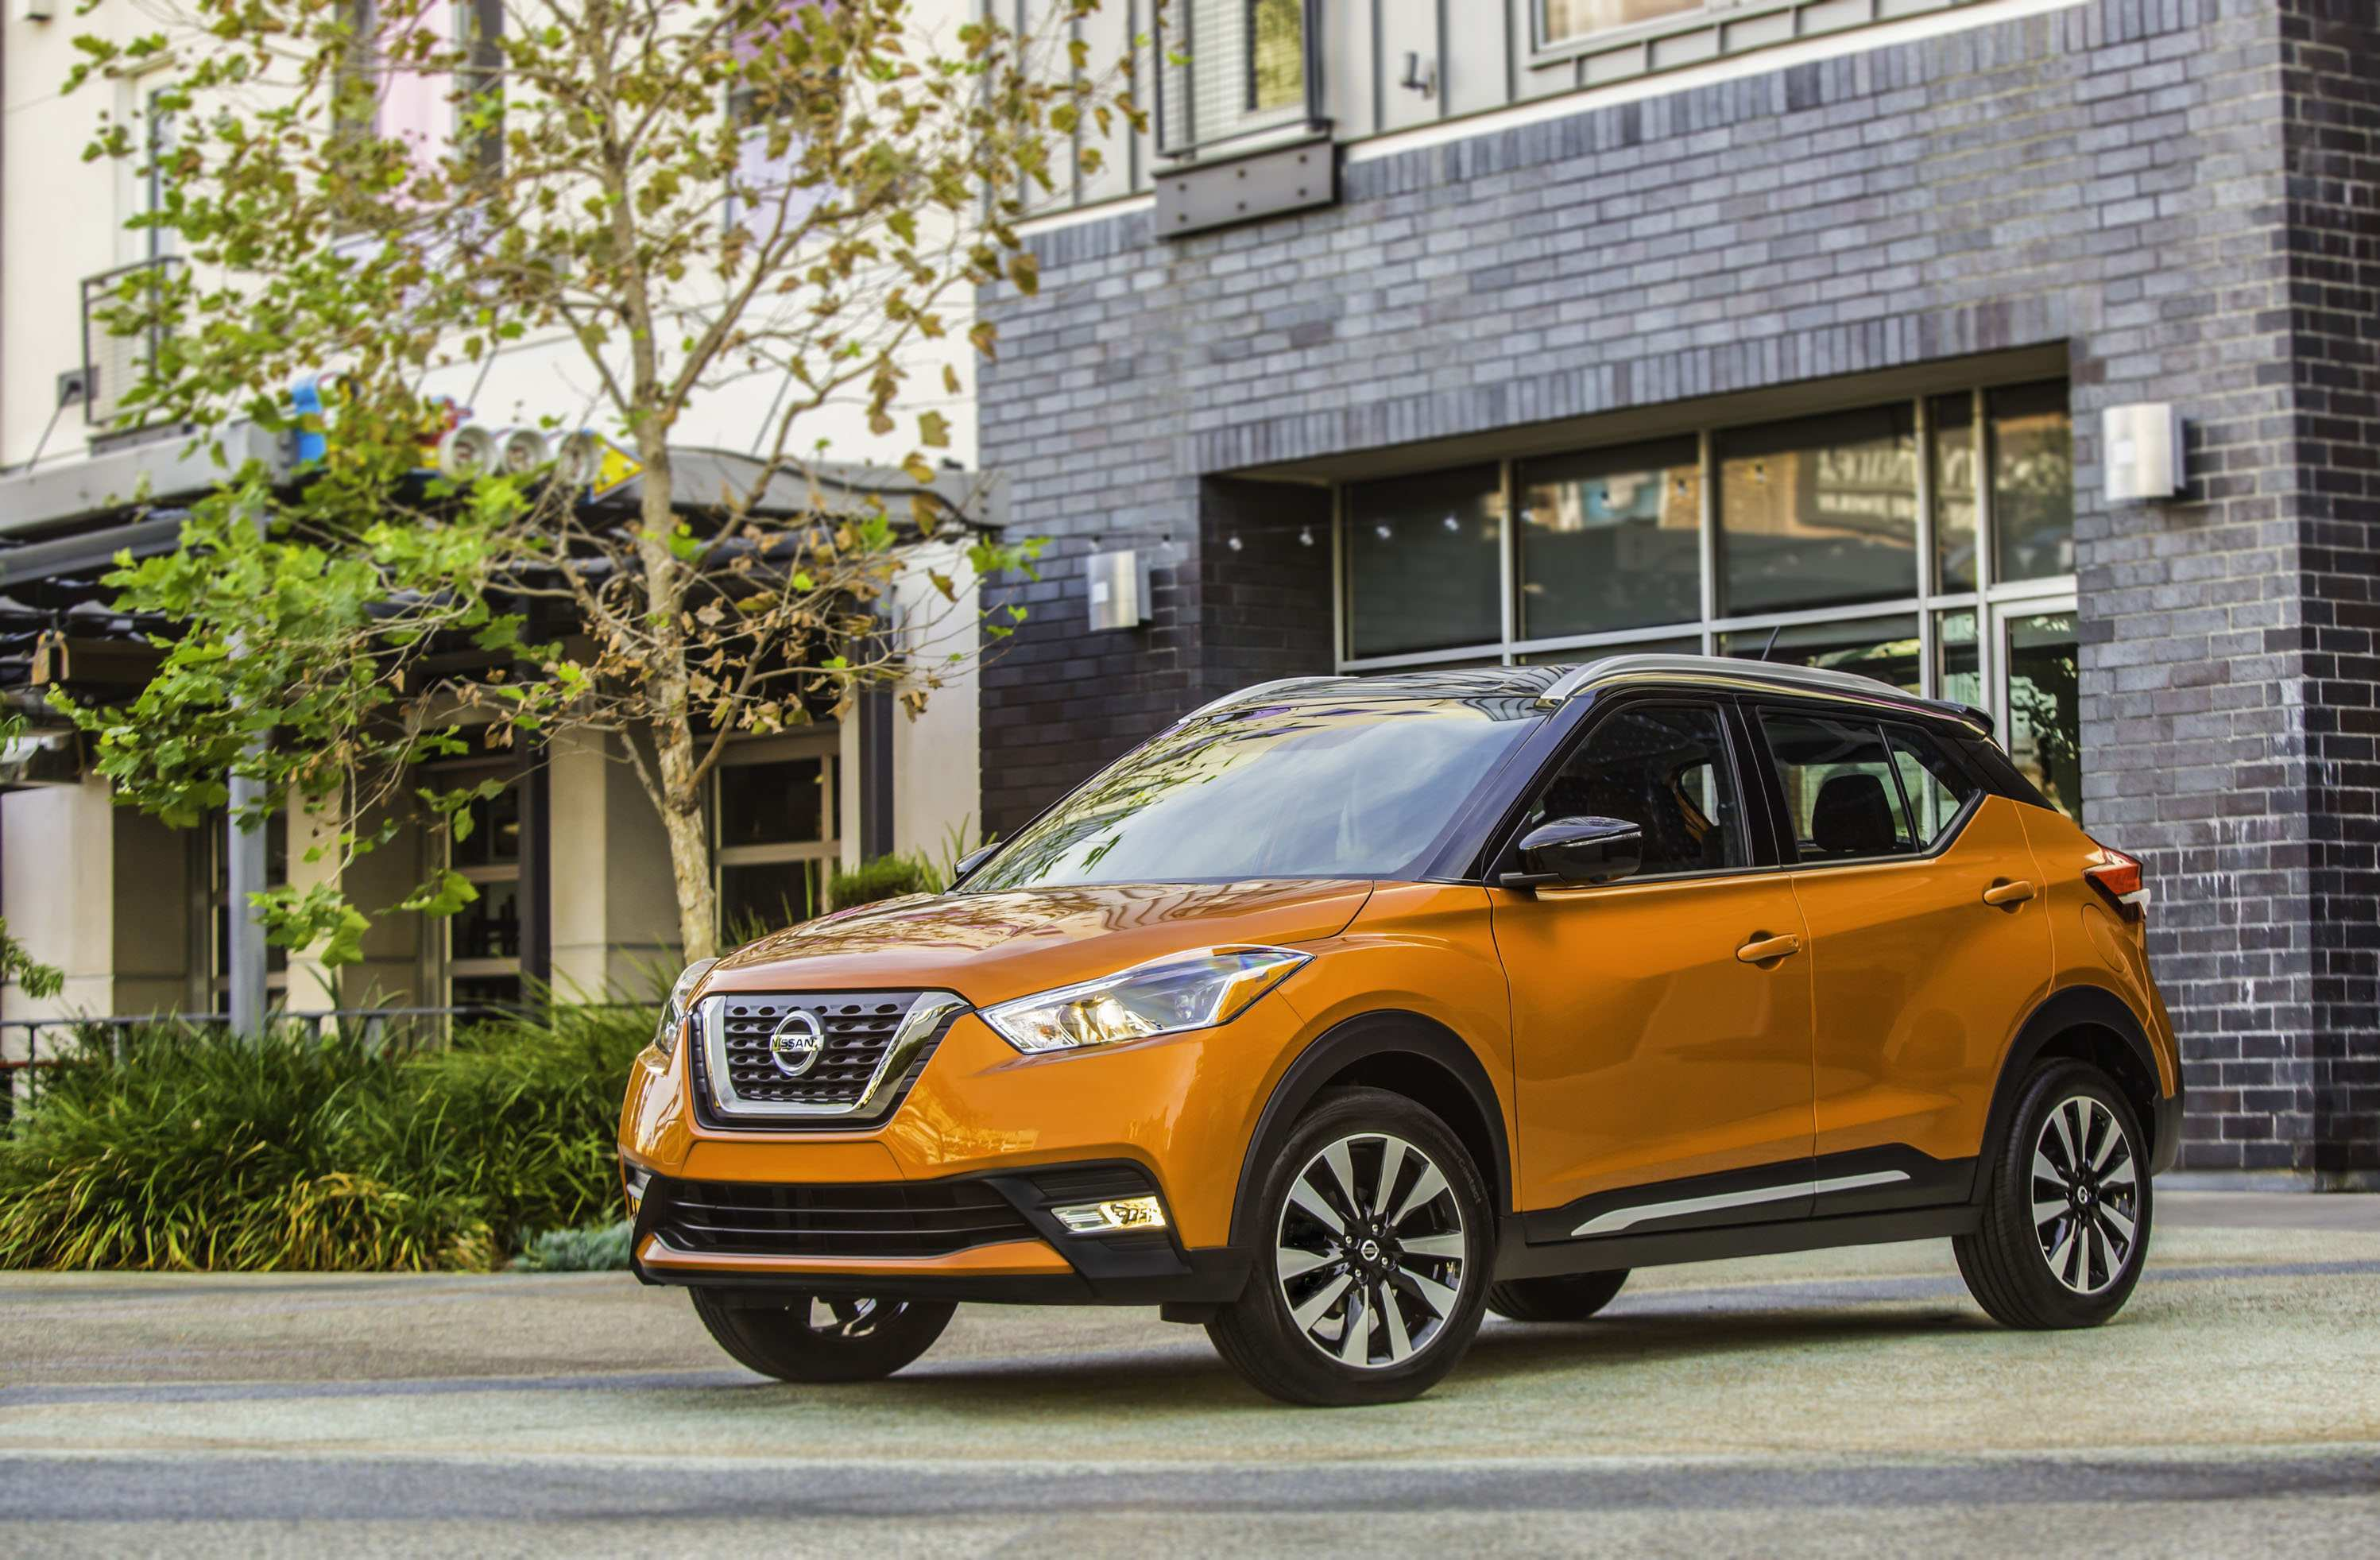 11 New Nissan Kicks 2019 Mexico Release